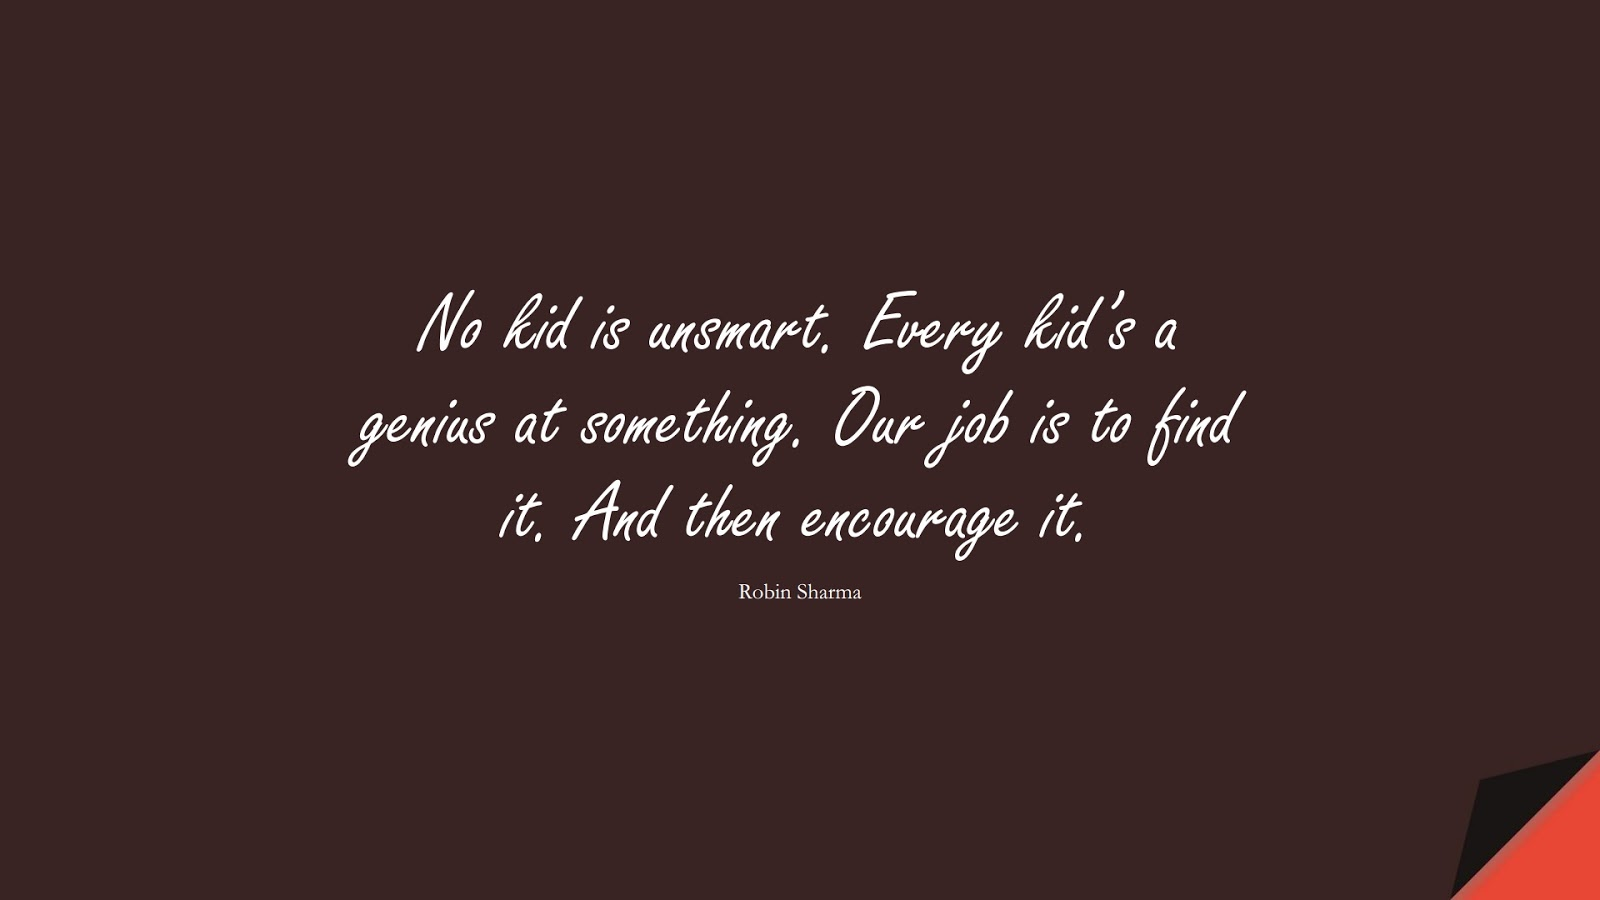 No kid is unsmart. Every kid's a genius at something. Our job is to find it. And then encourage it. (Robin Sharma);  #SuccessQuotes